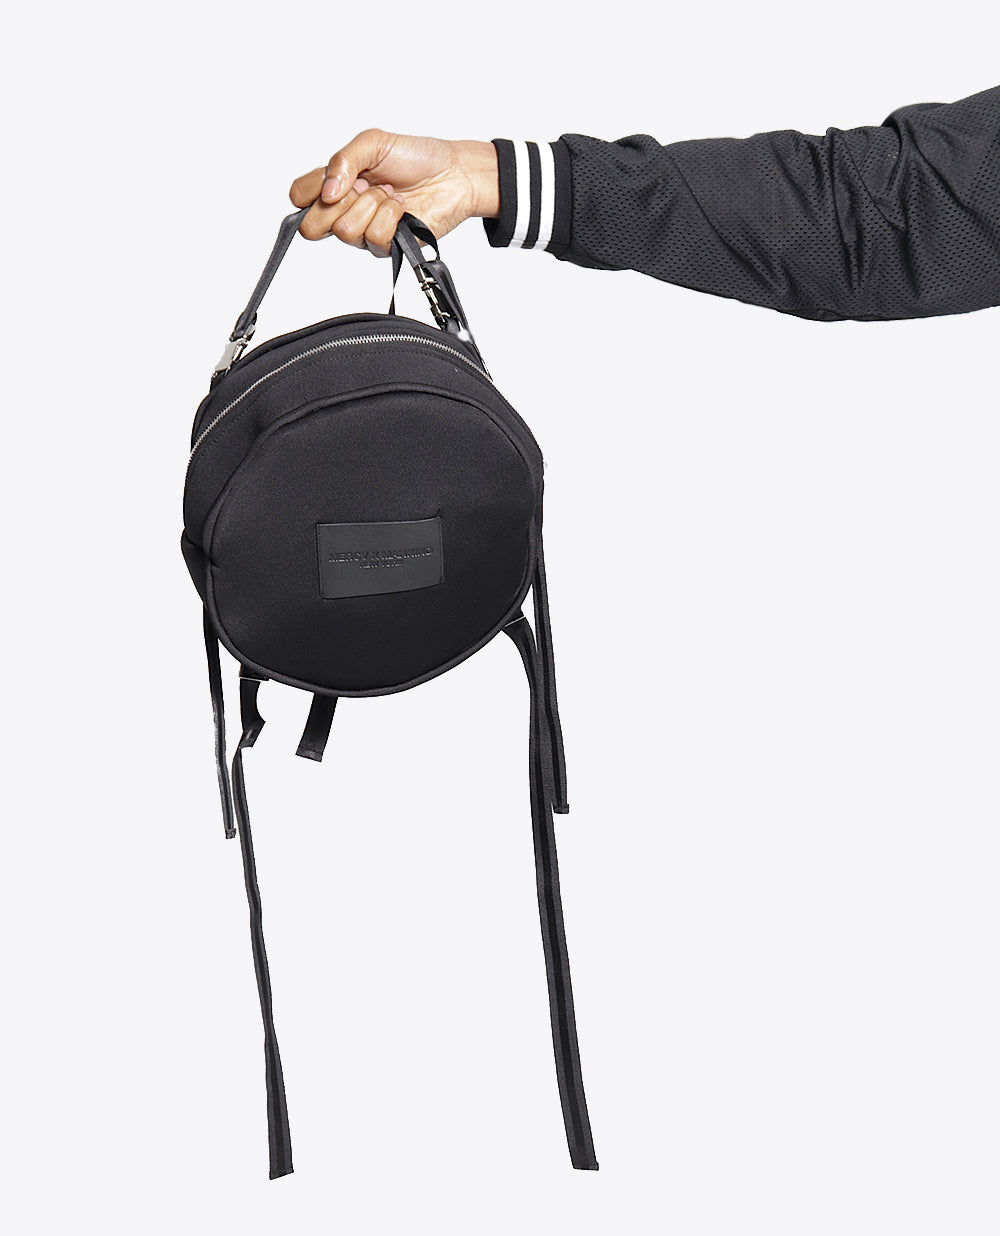 Infinity Bag / Neoprene